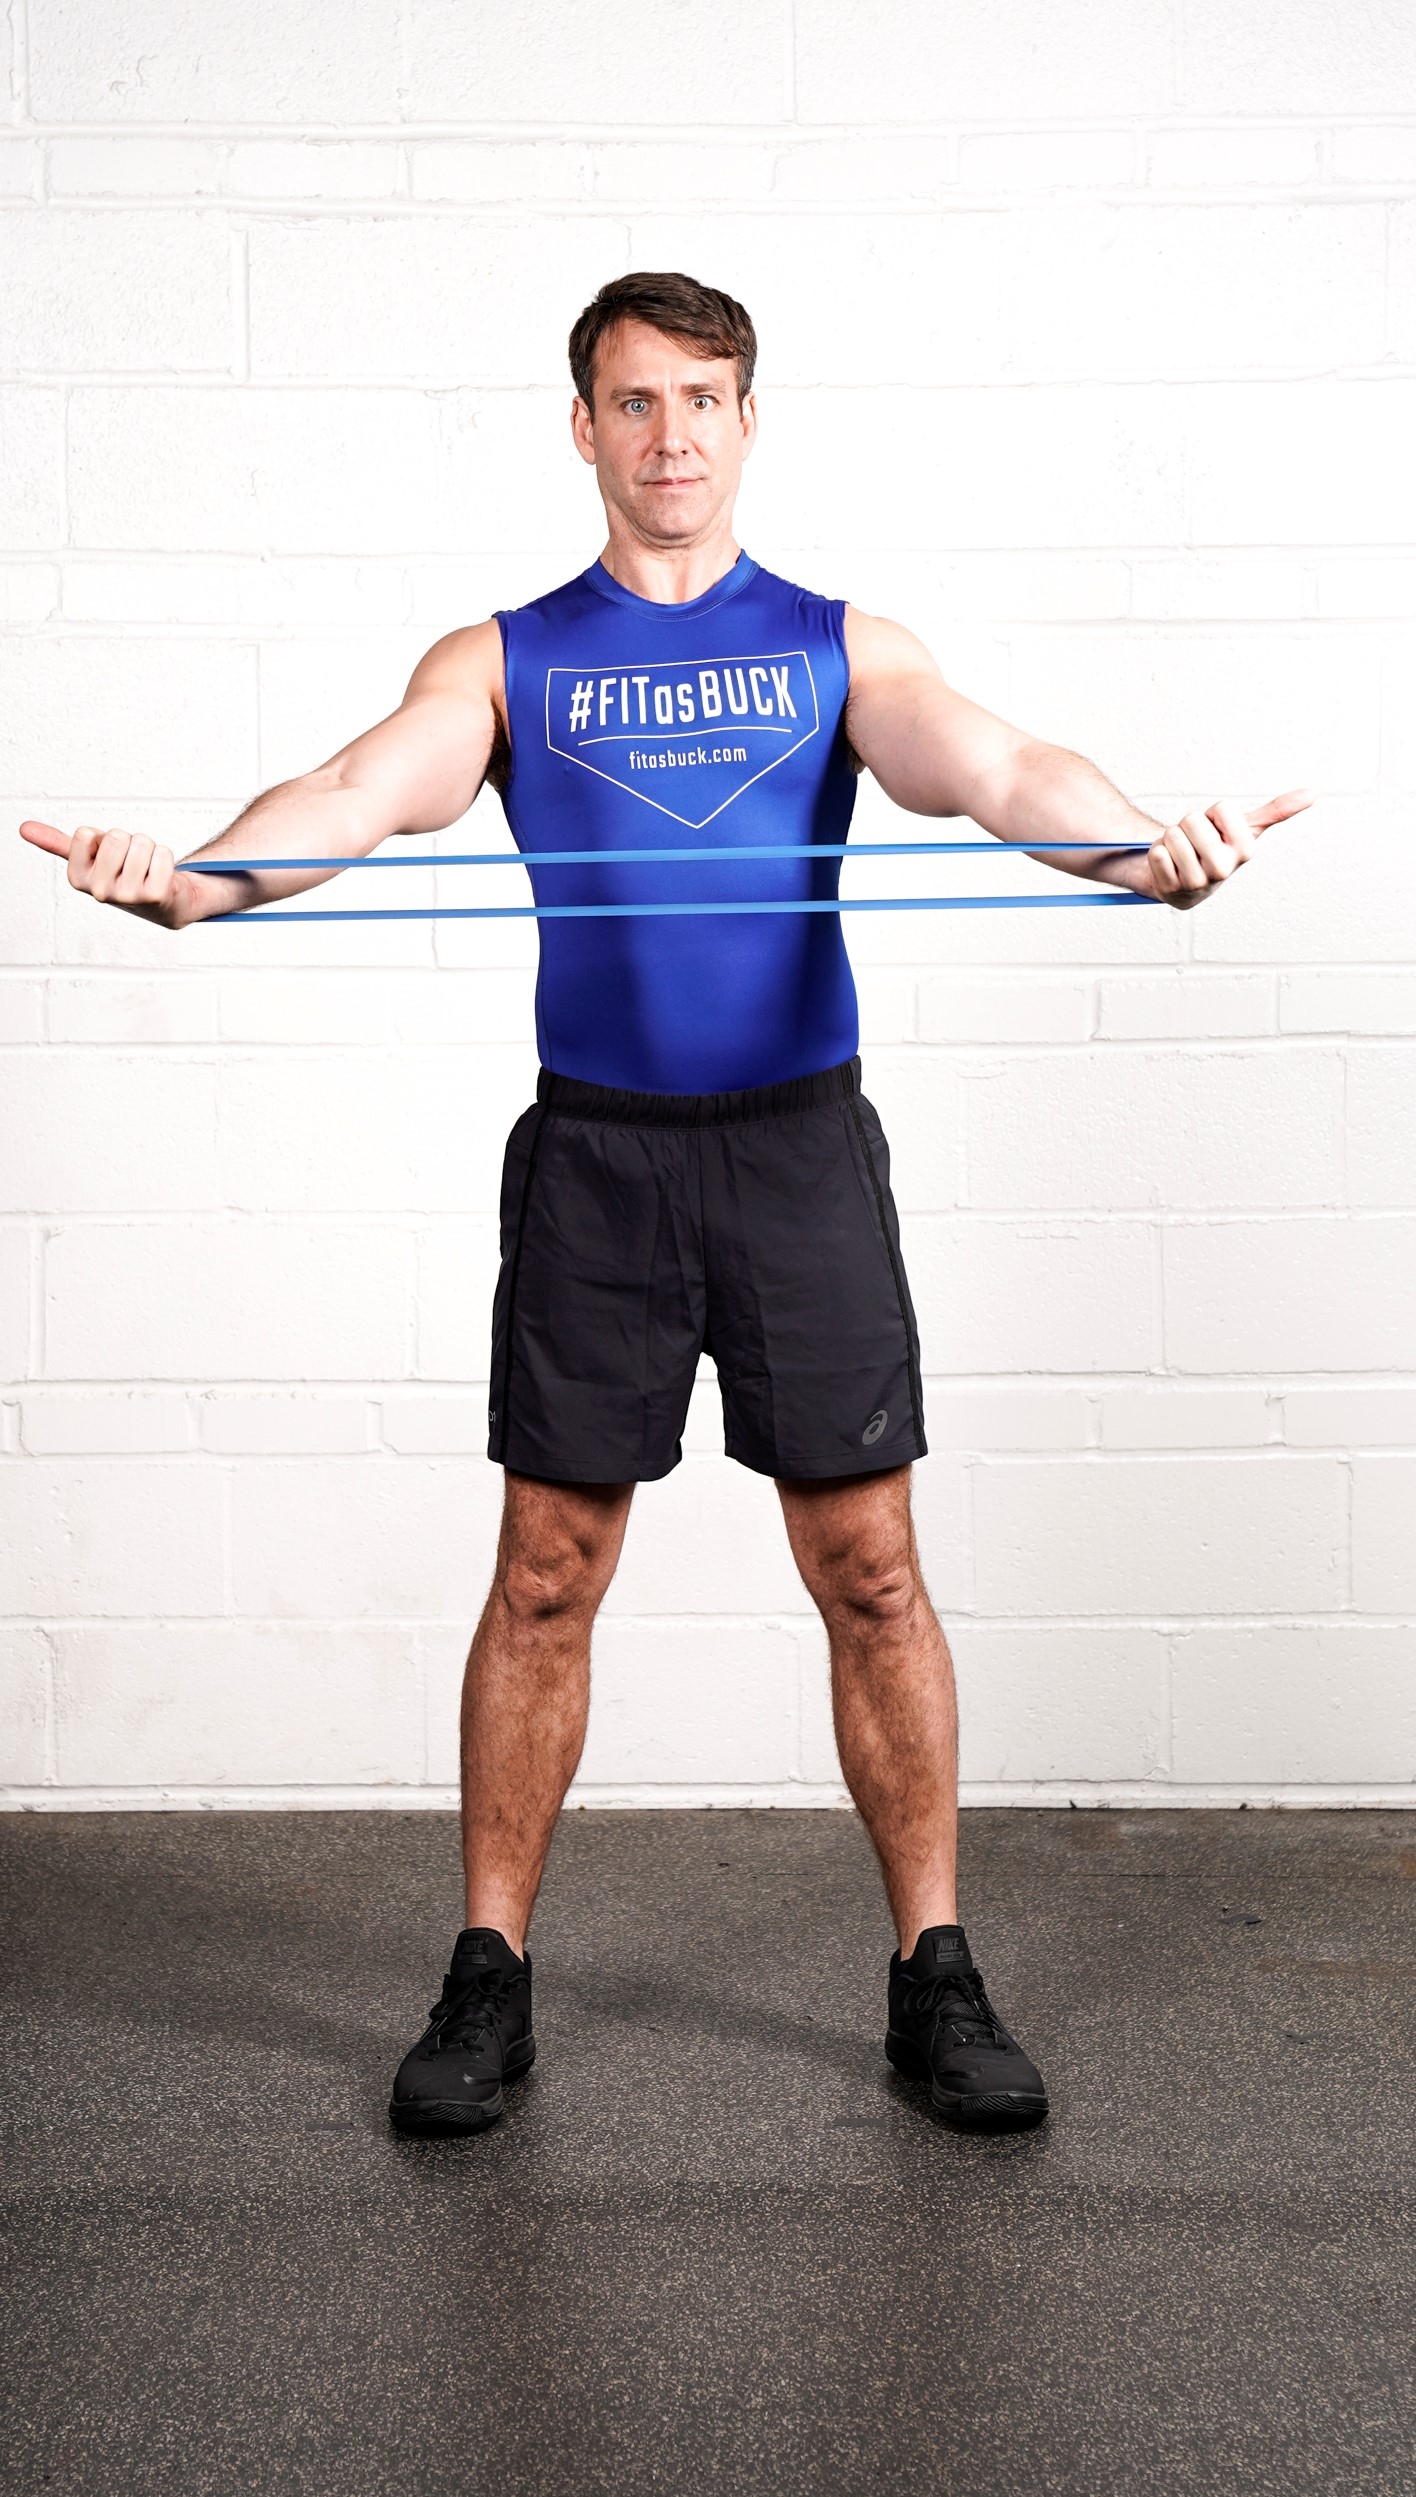 Underhand Resistance Band Hold - - DURATION: 30 seconds- SETS: 1